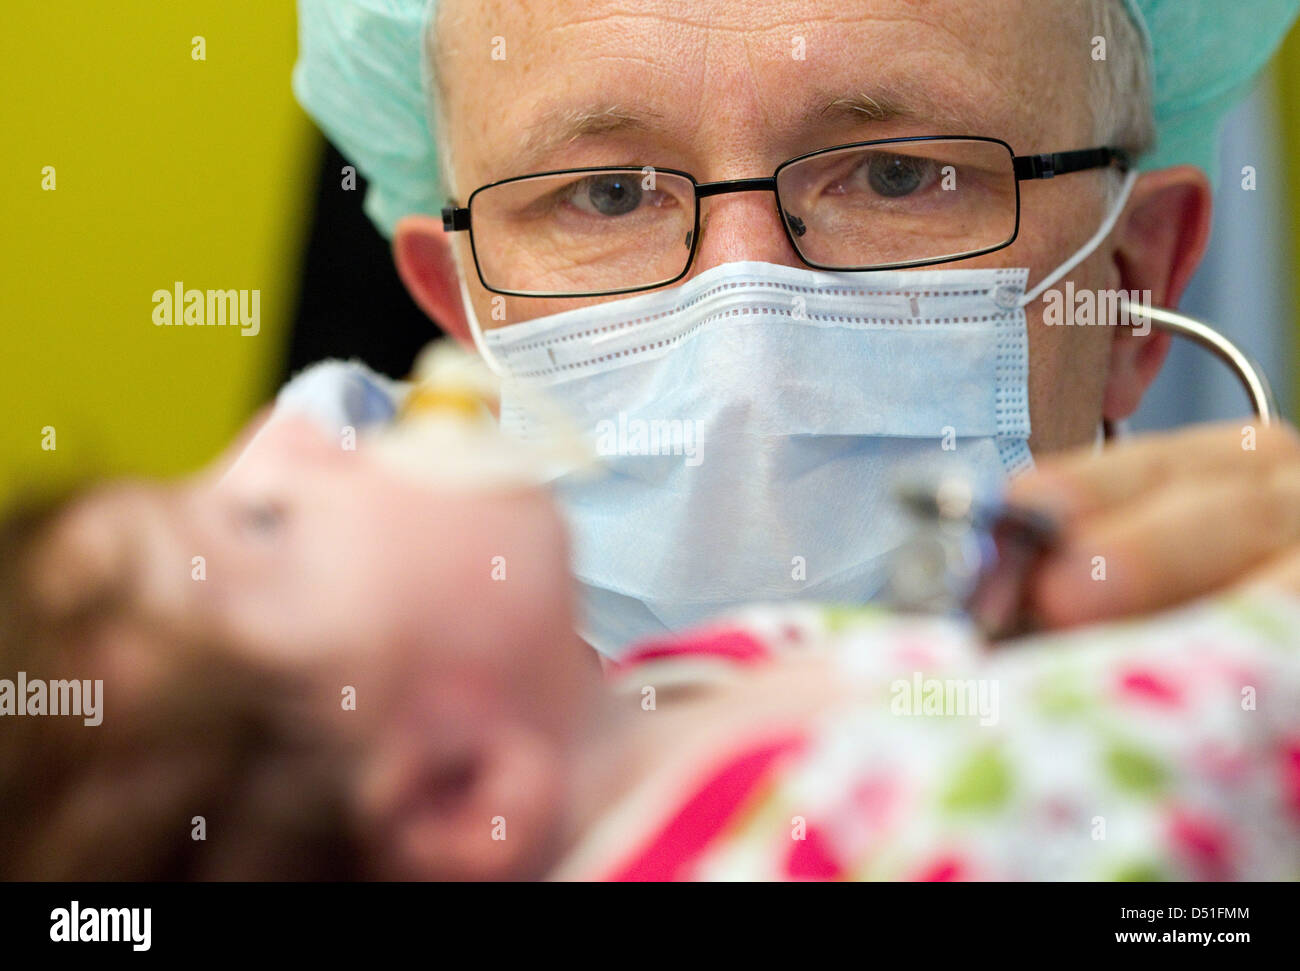 The director of children's cardiology, Dr Hans Gerd Kehl, examines a six-week-old baby in the intensive care - Stock Image